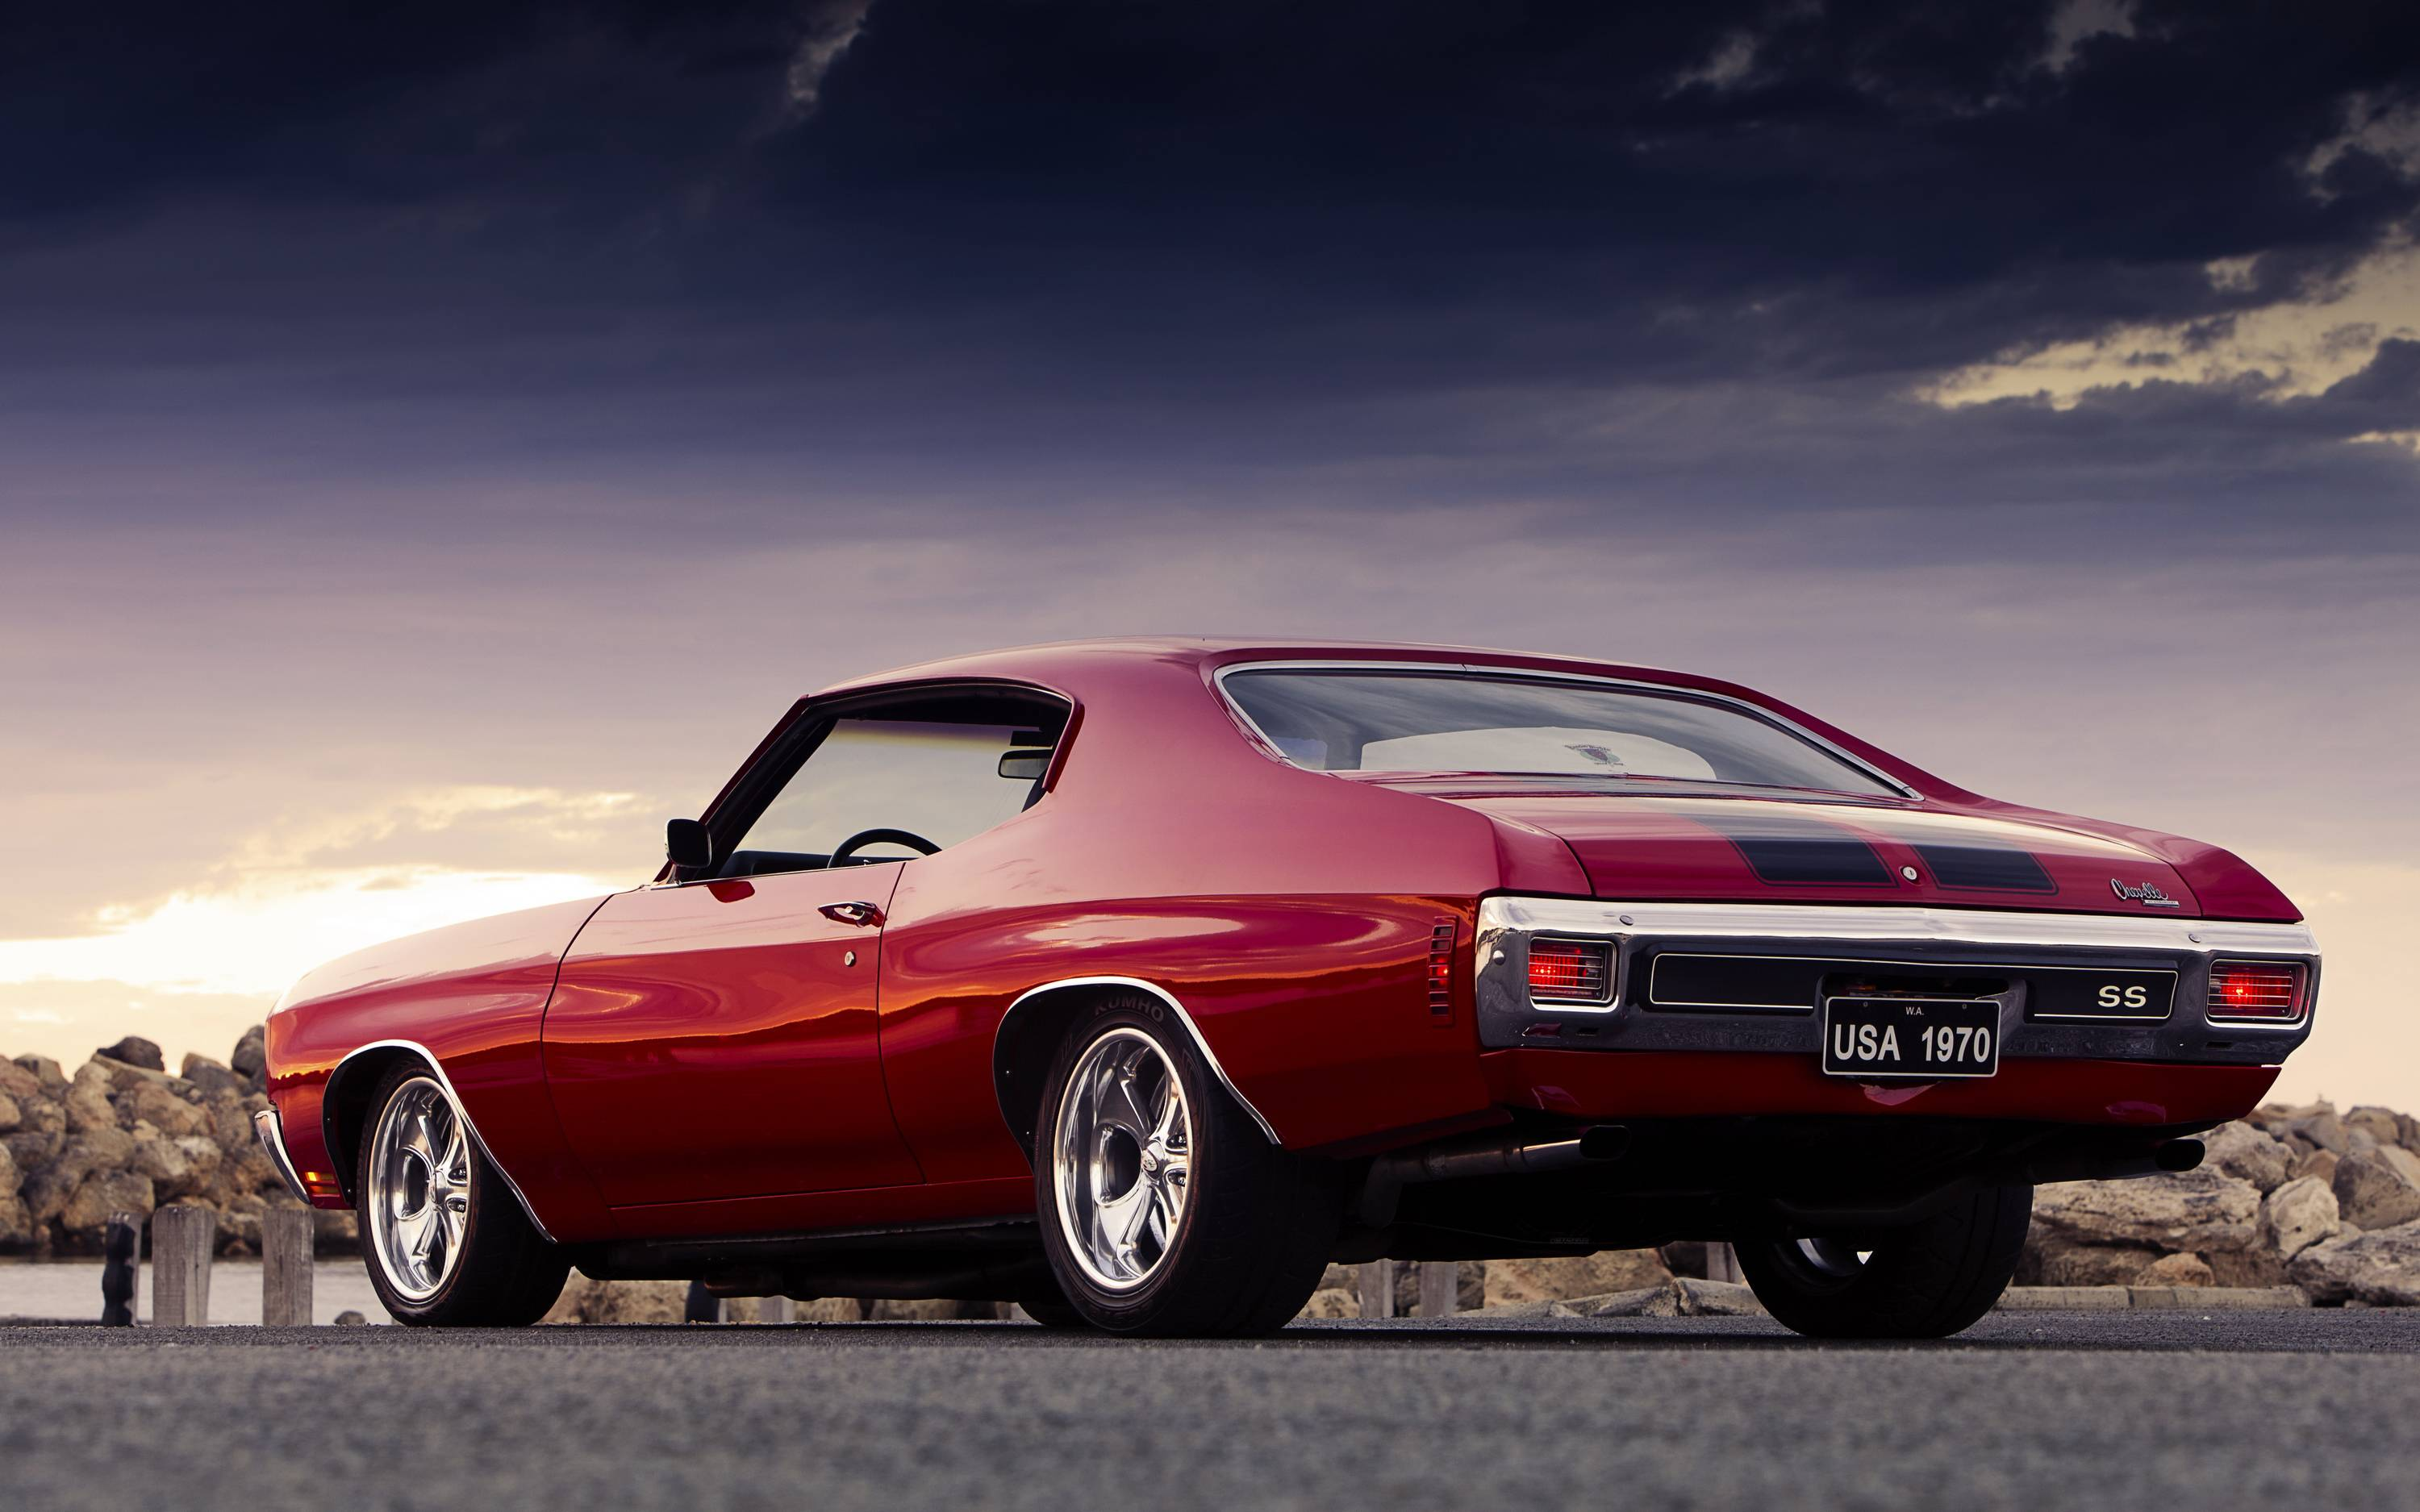 Chevelle Wallpapers 3000x1875